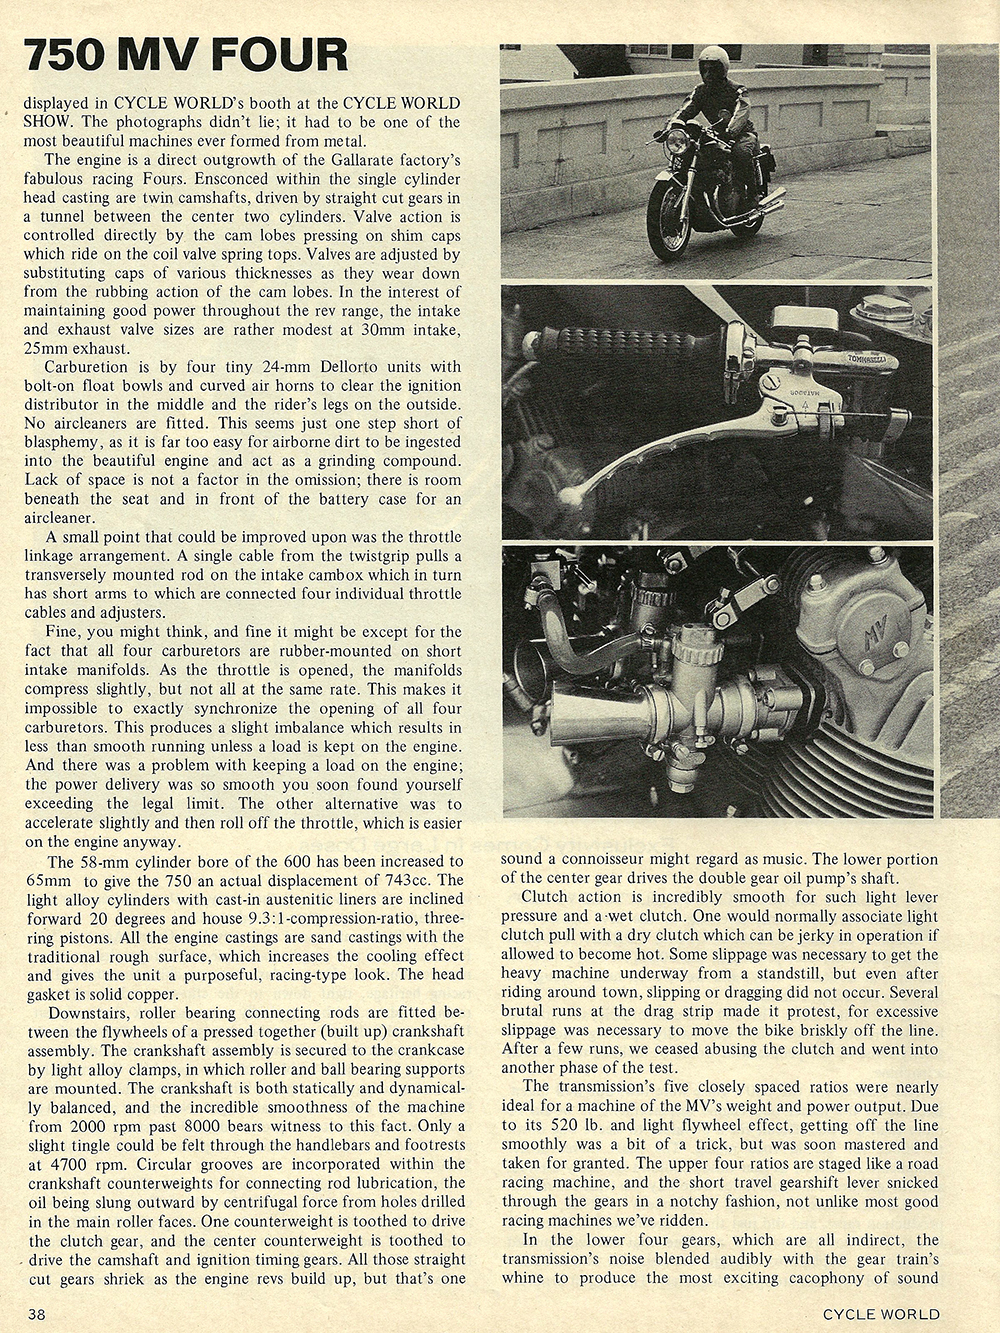 1971 MV 750 four road test 02.jpg